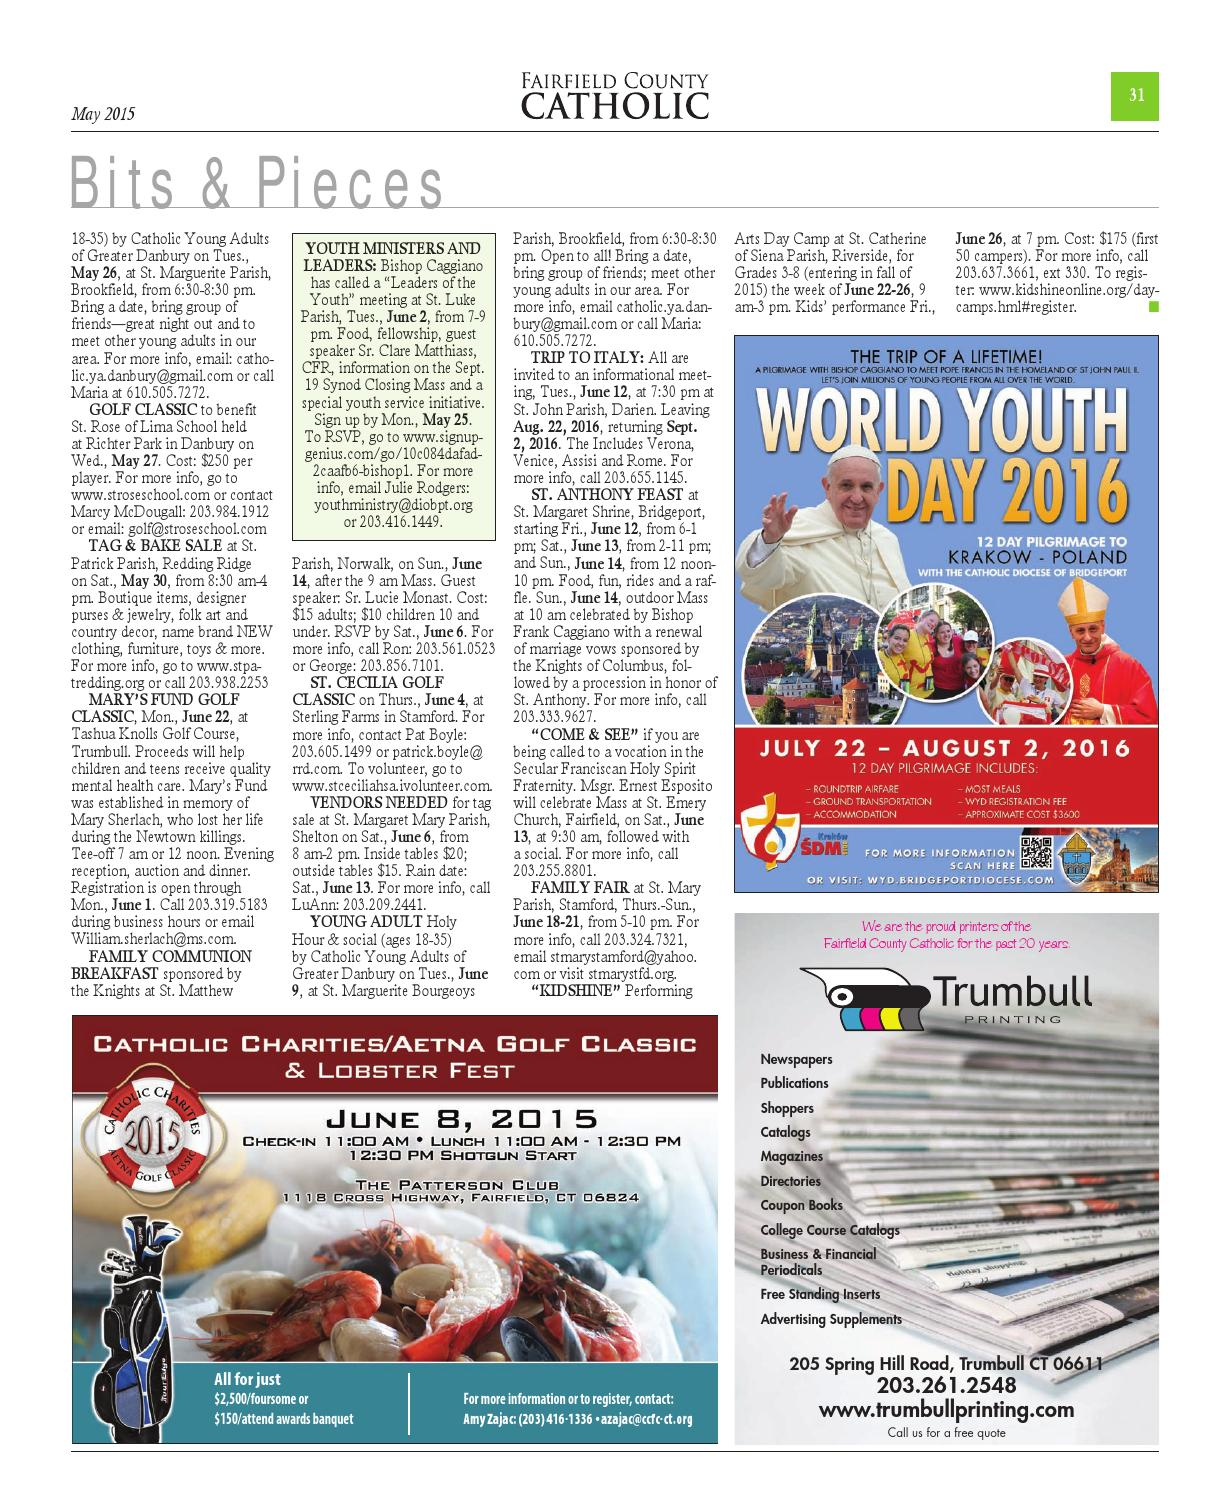 Fairfield County Catholic May 2015 by The Diocese of Bridgeport - issuu